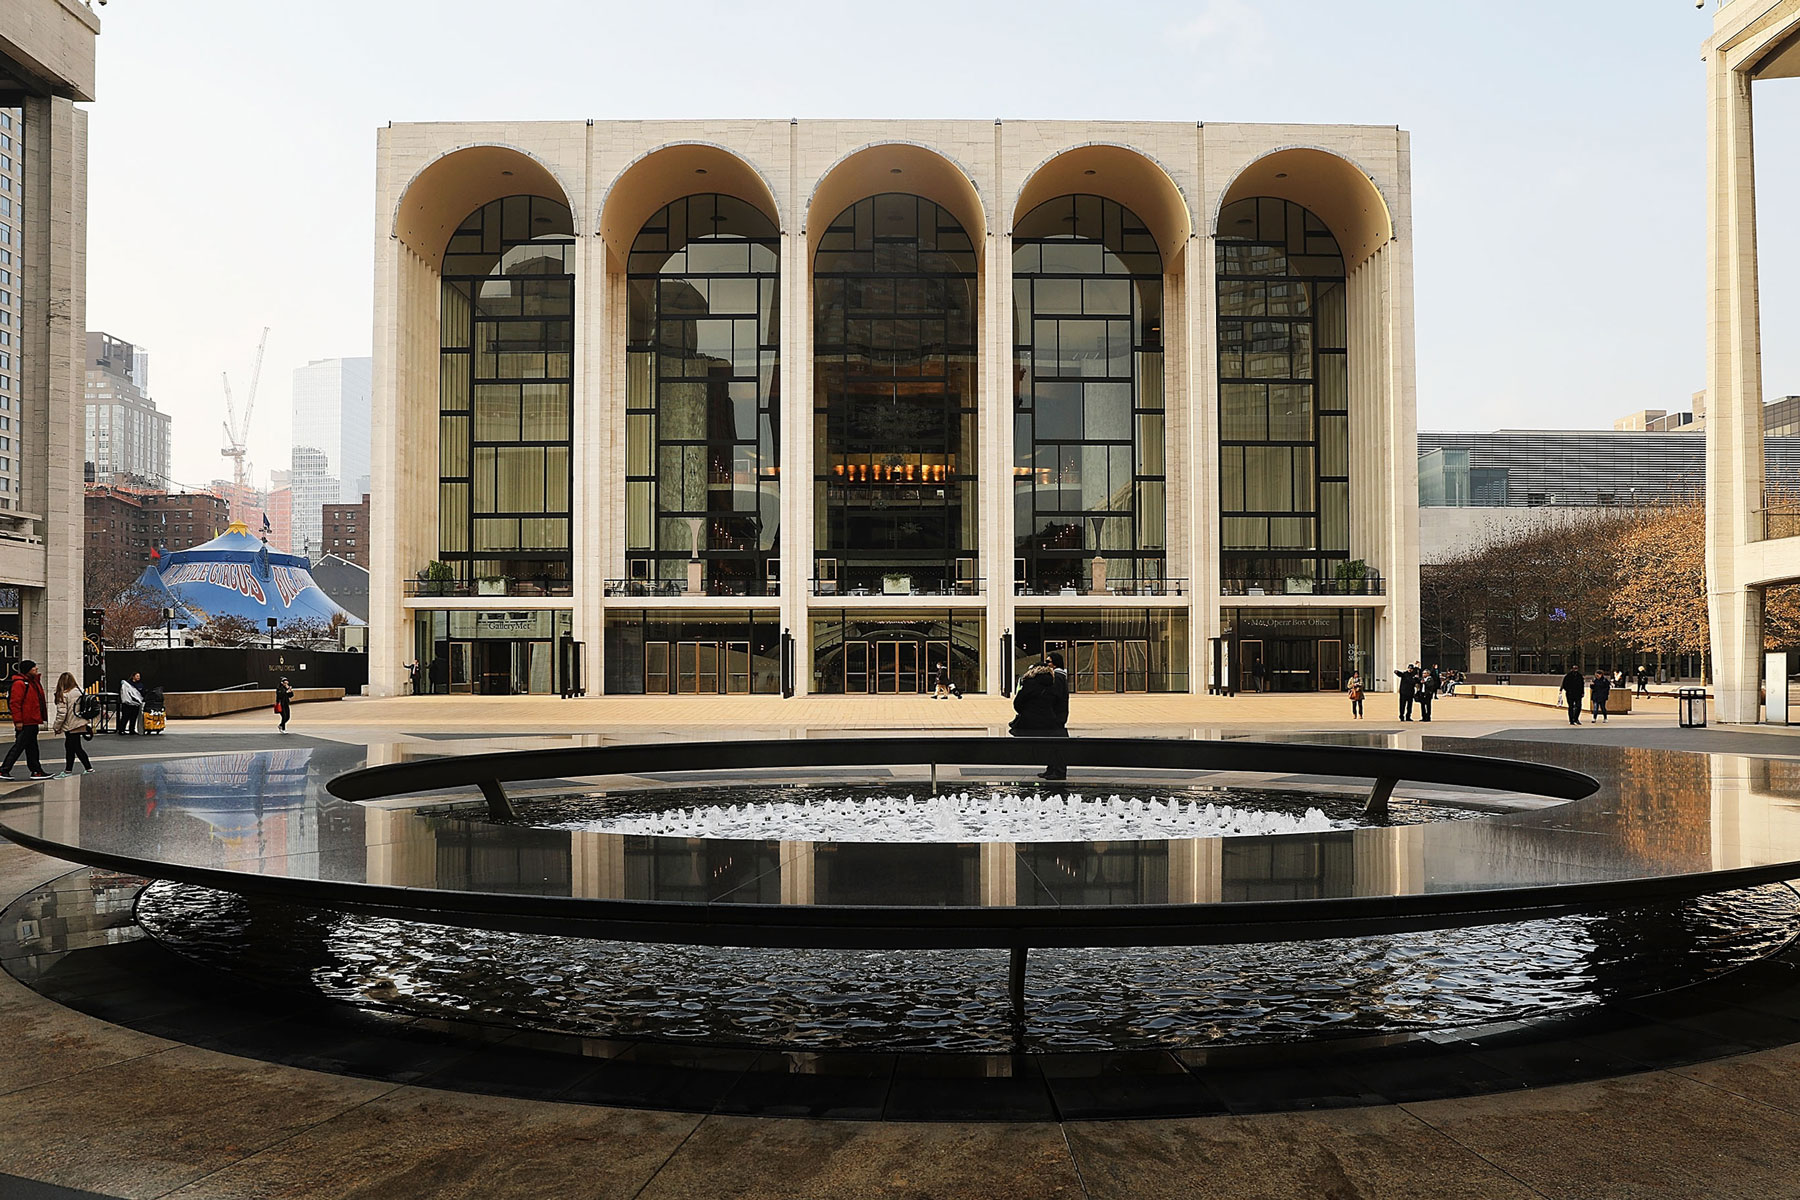 New York's Metropolitan Opera stands in Lincoln Center